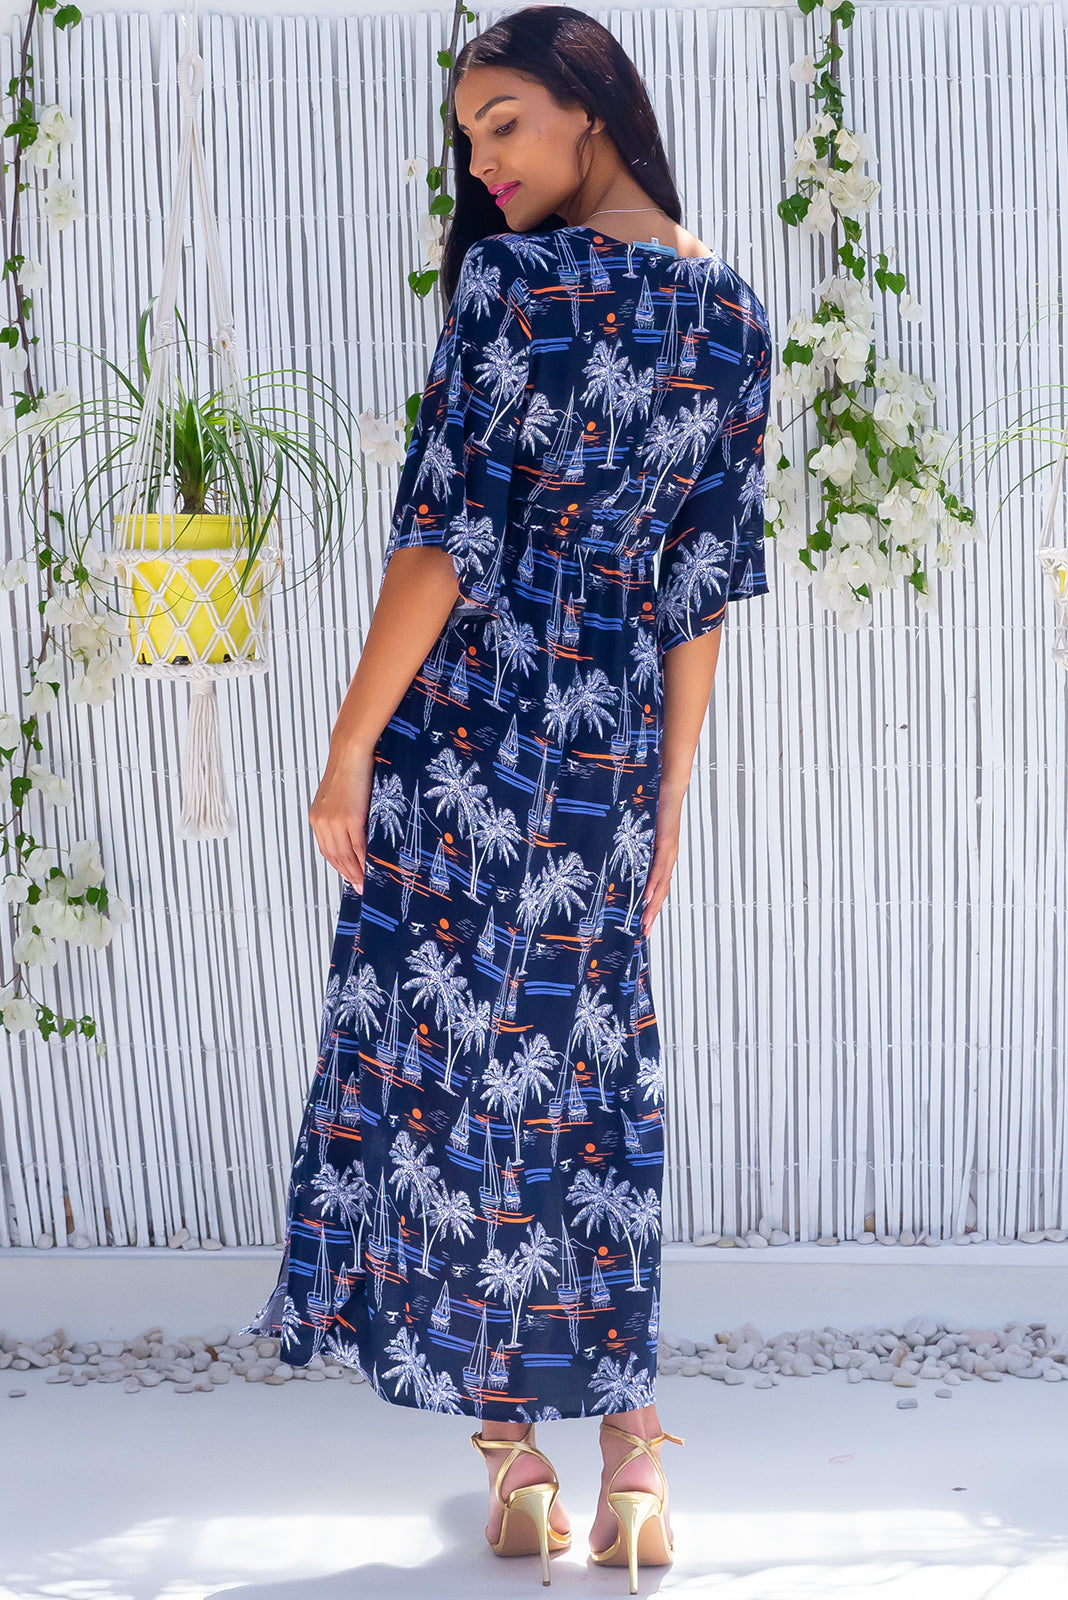 The Annabella Bali Harbour Navy Caftan Maxi Dress features deep V-neckline, side pockets, braided multicoloured drawstring with tassels and bead and 100% rayon in navy base with palms and boat print.